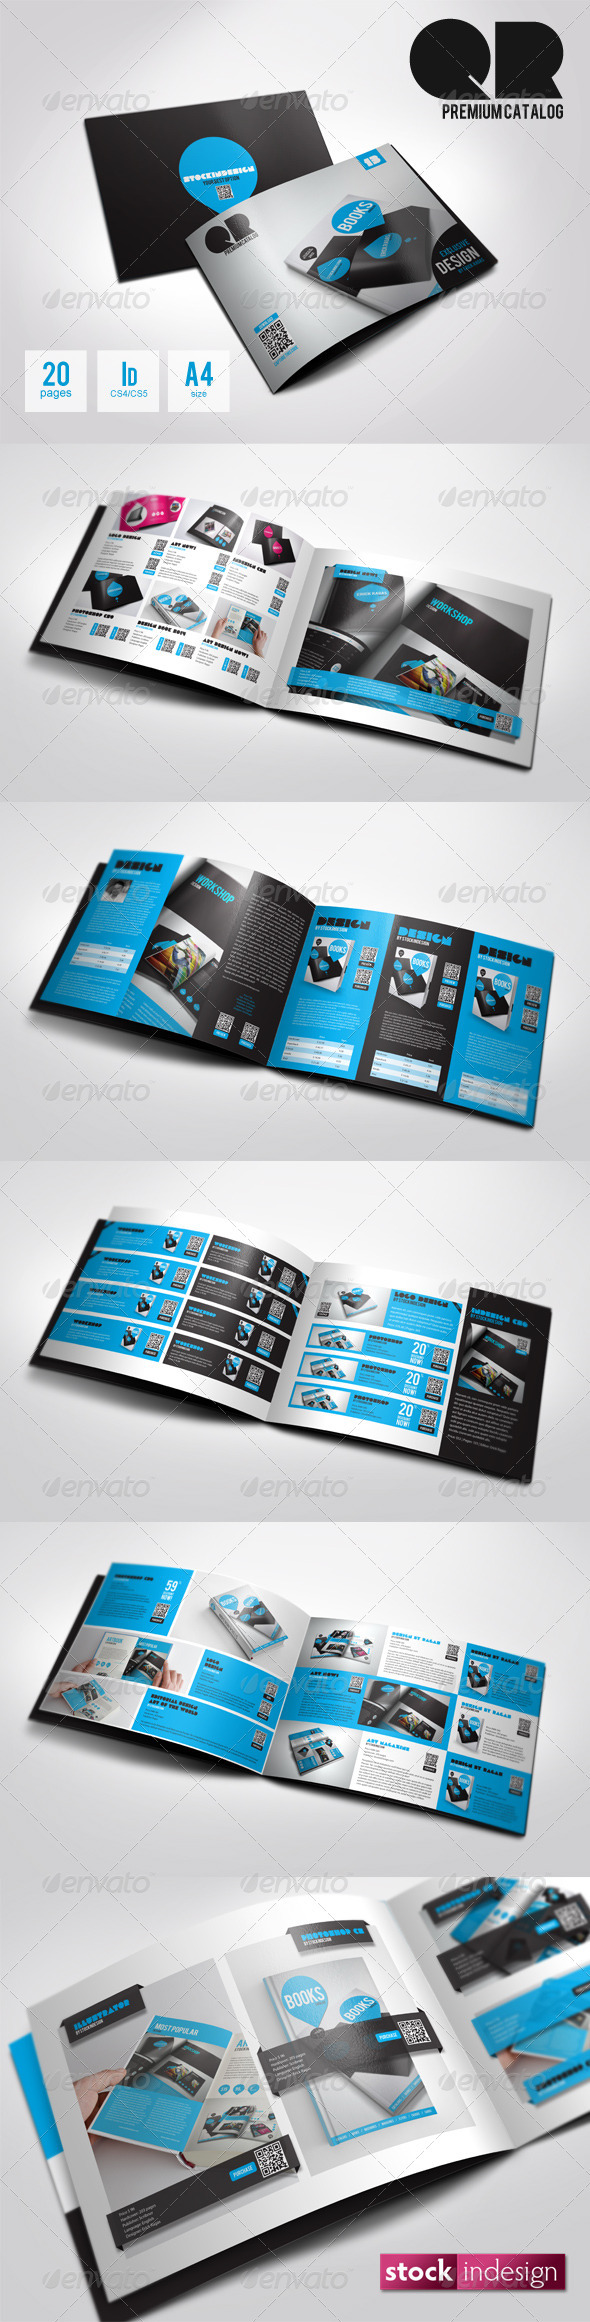 QR Flexible Product Catalog Premium v2 - Catalogs Brochures